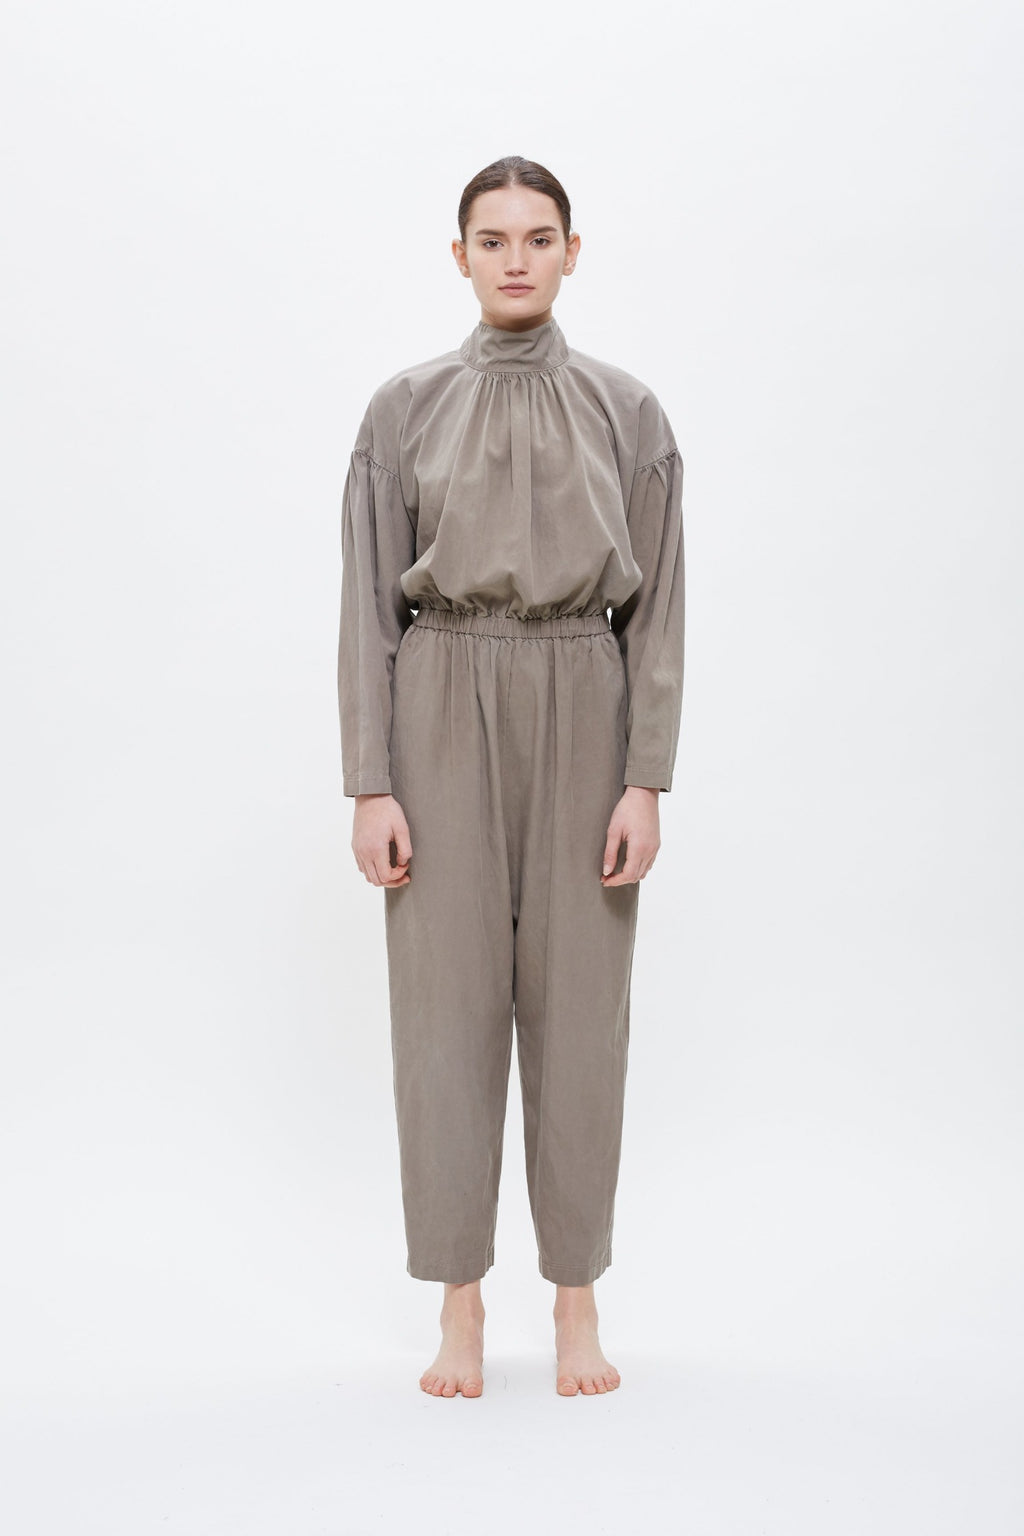 TULIP JUMPSUIT / TC-TJ17 (COTTON TENCEL) / ASH